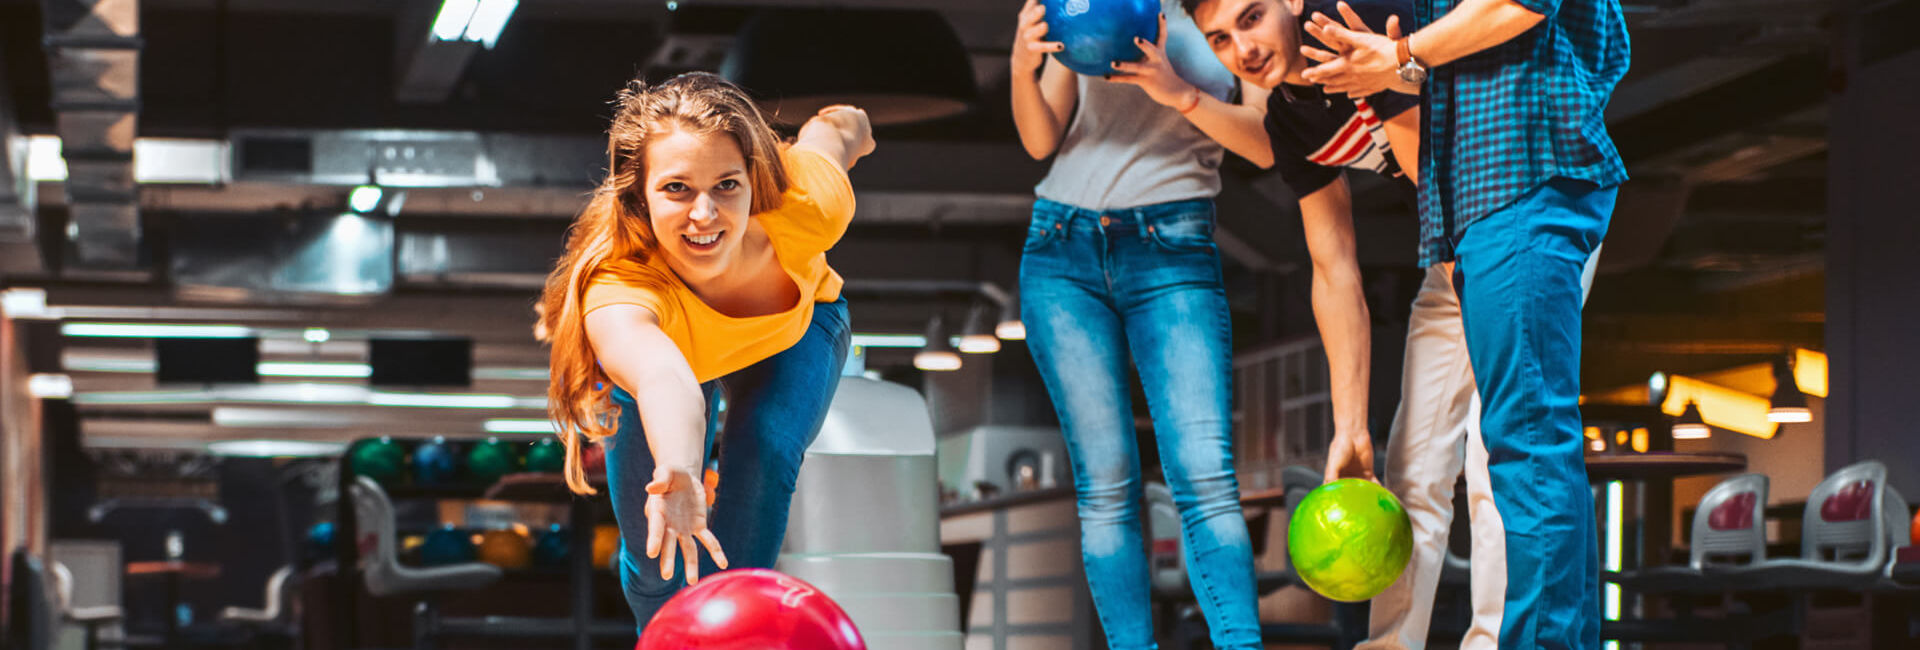 Young girl bowling with friends